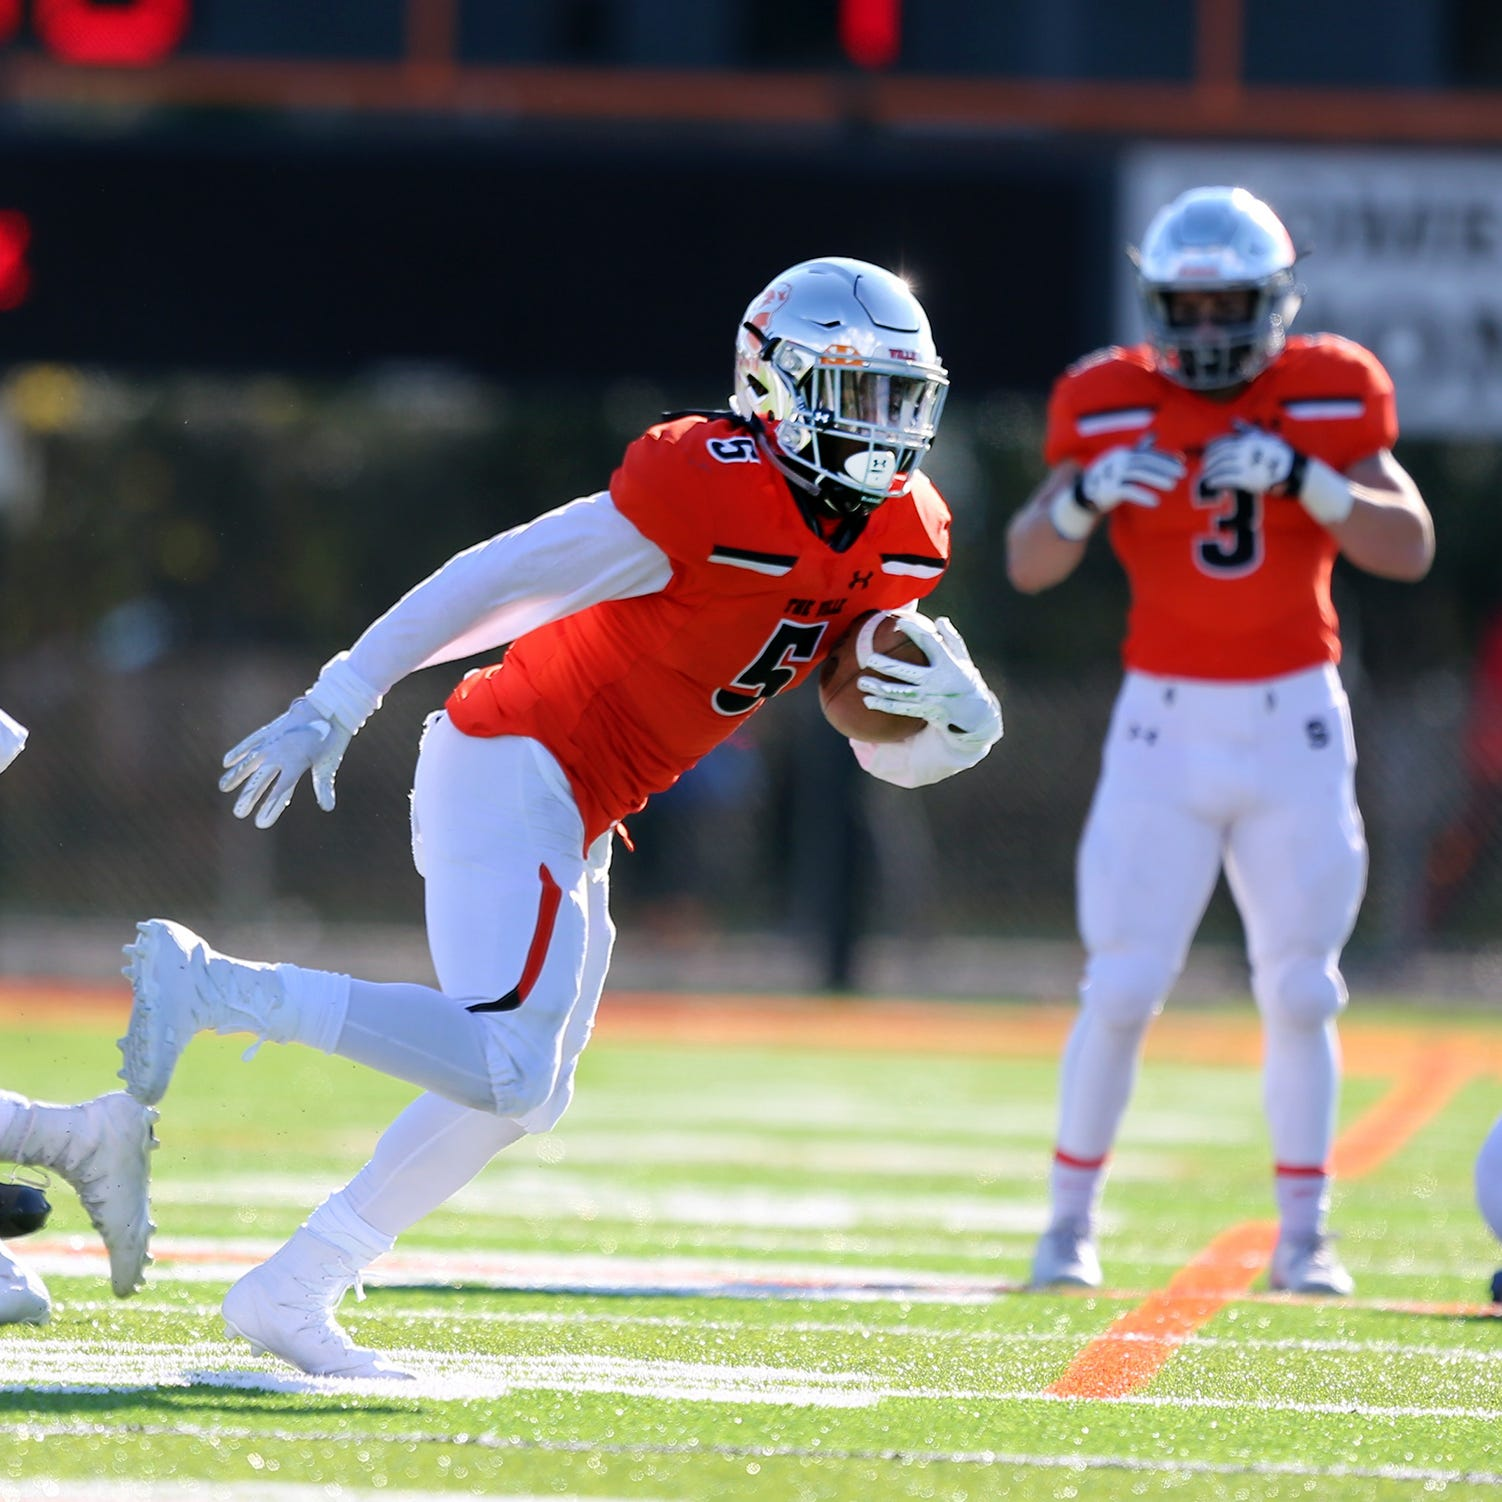 NJ FOOTBALL: Somerville digs deep to rally past Holmdel in CJIII semifinals